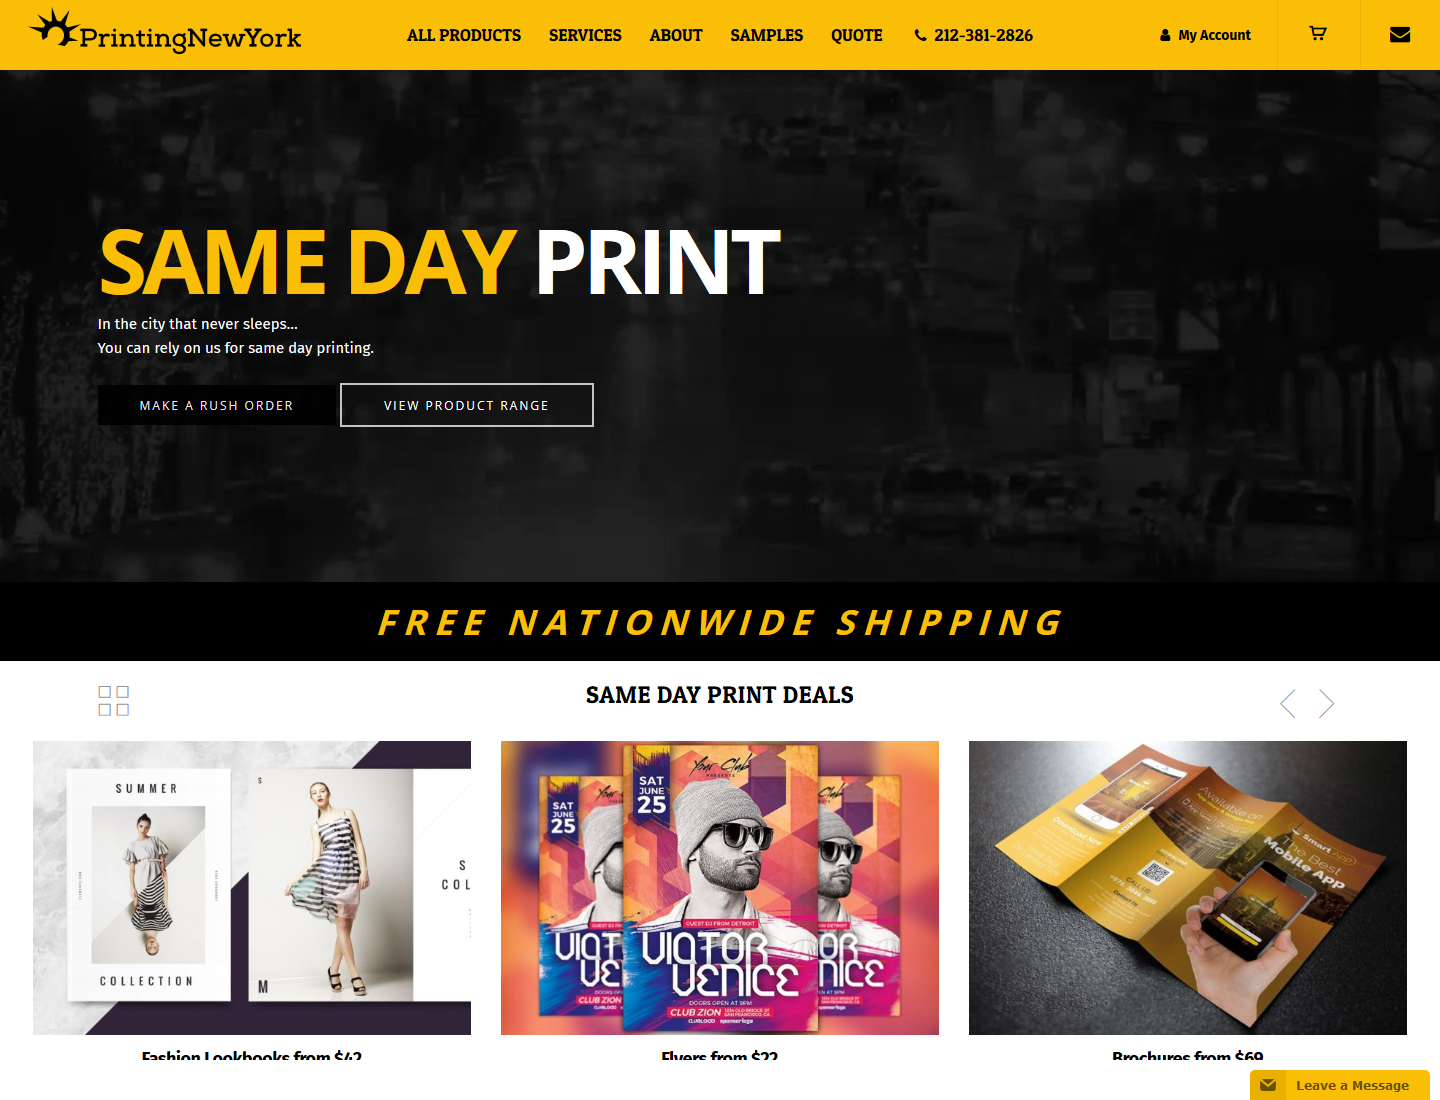 Printing New York WordPress ecommerce site